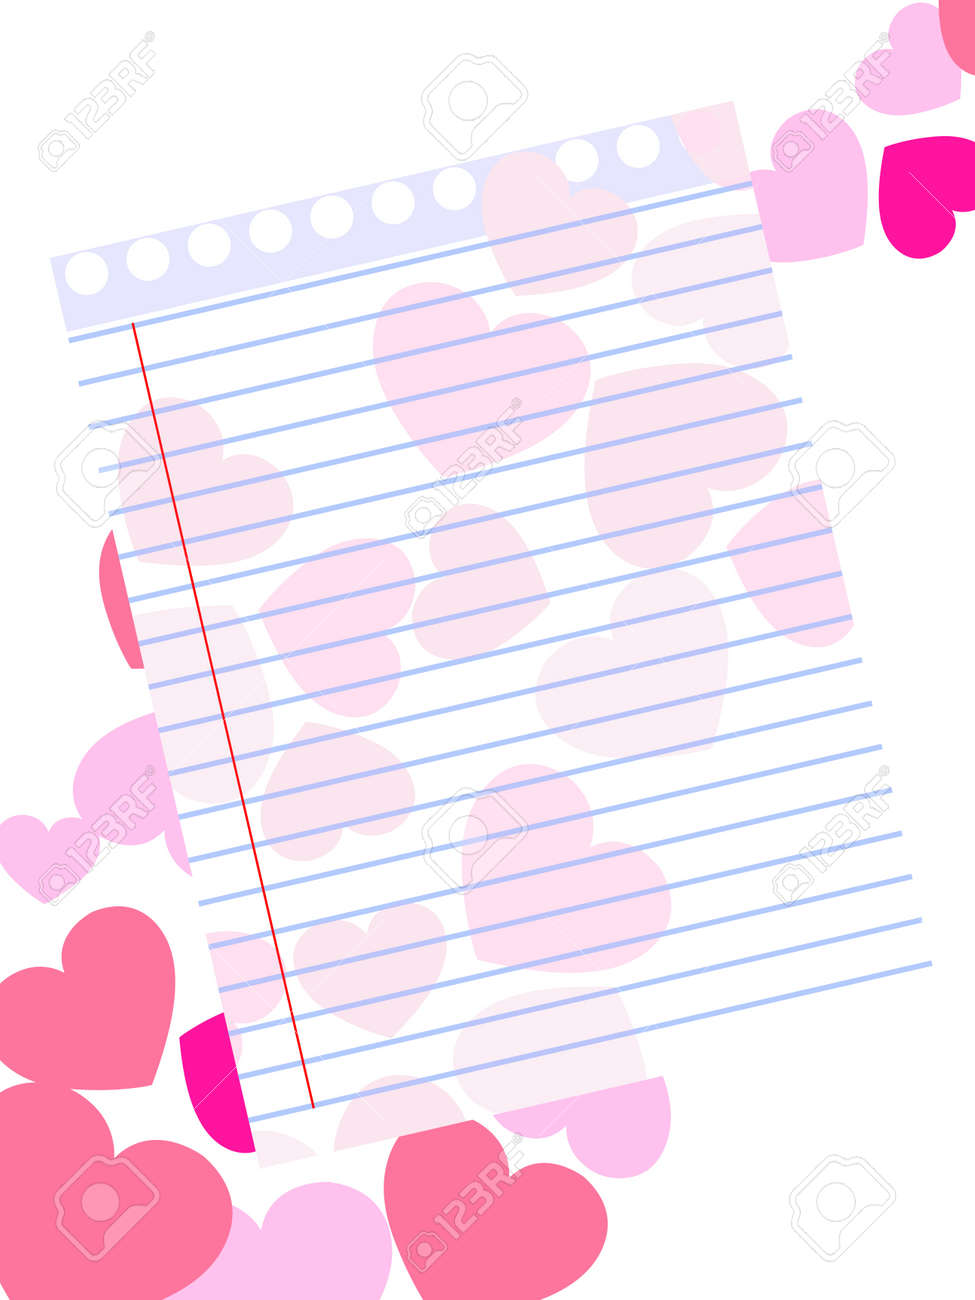 Captivating Template Of A Love Card On Pink Heart Shape Background With Blank Note  Paper For Valentines